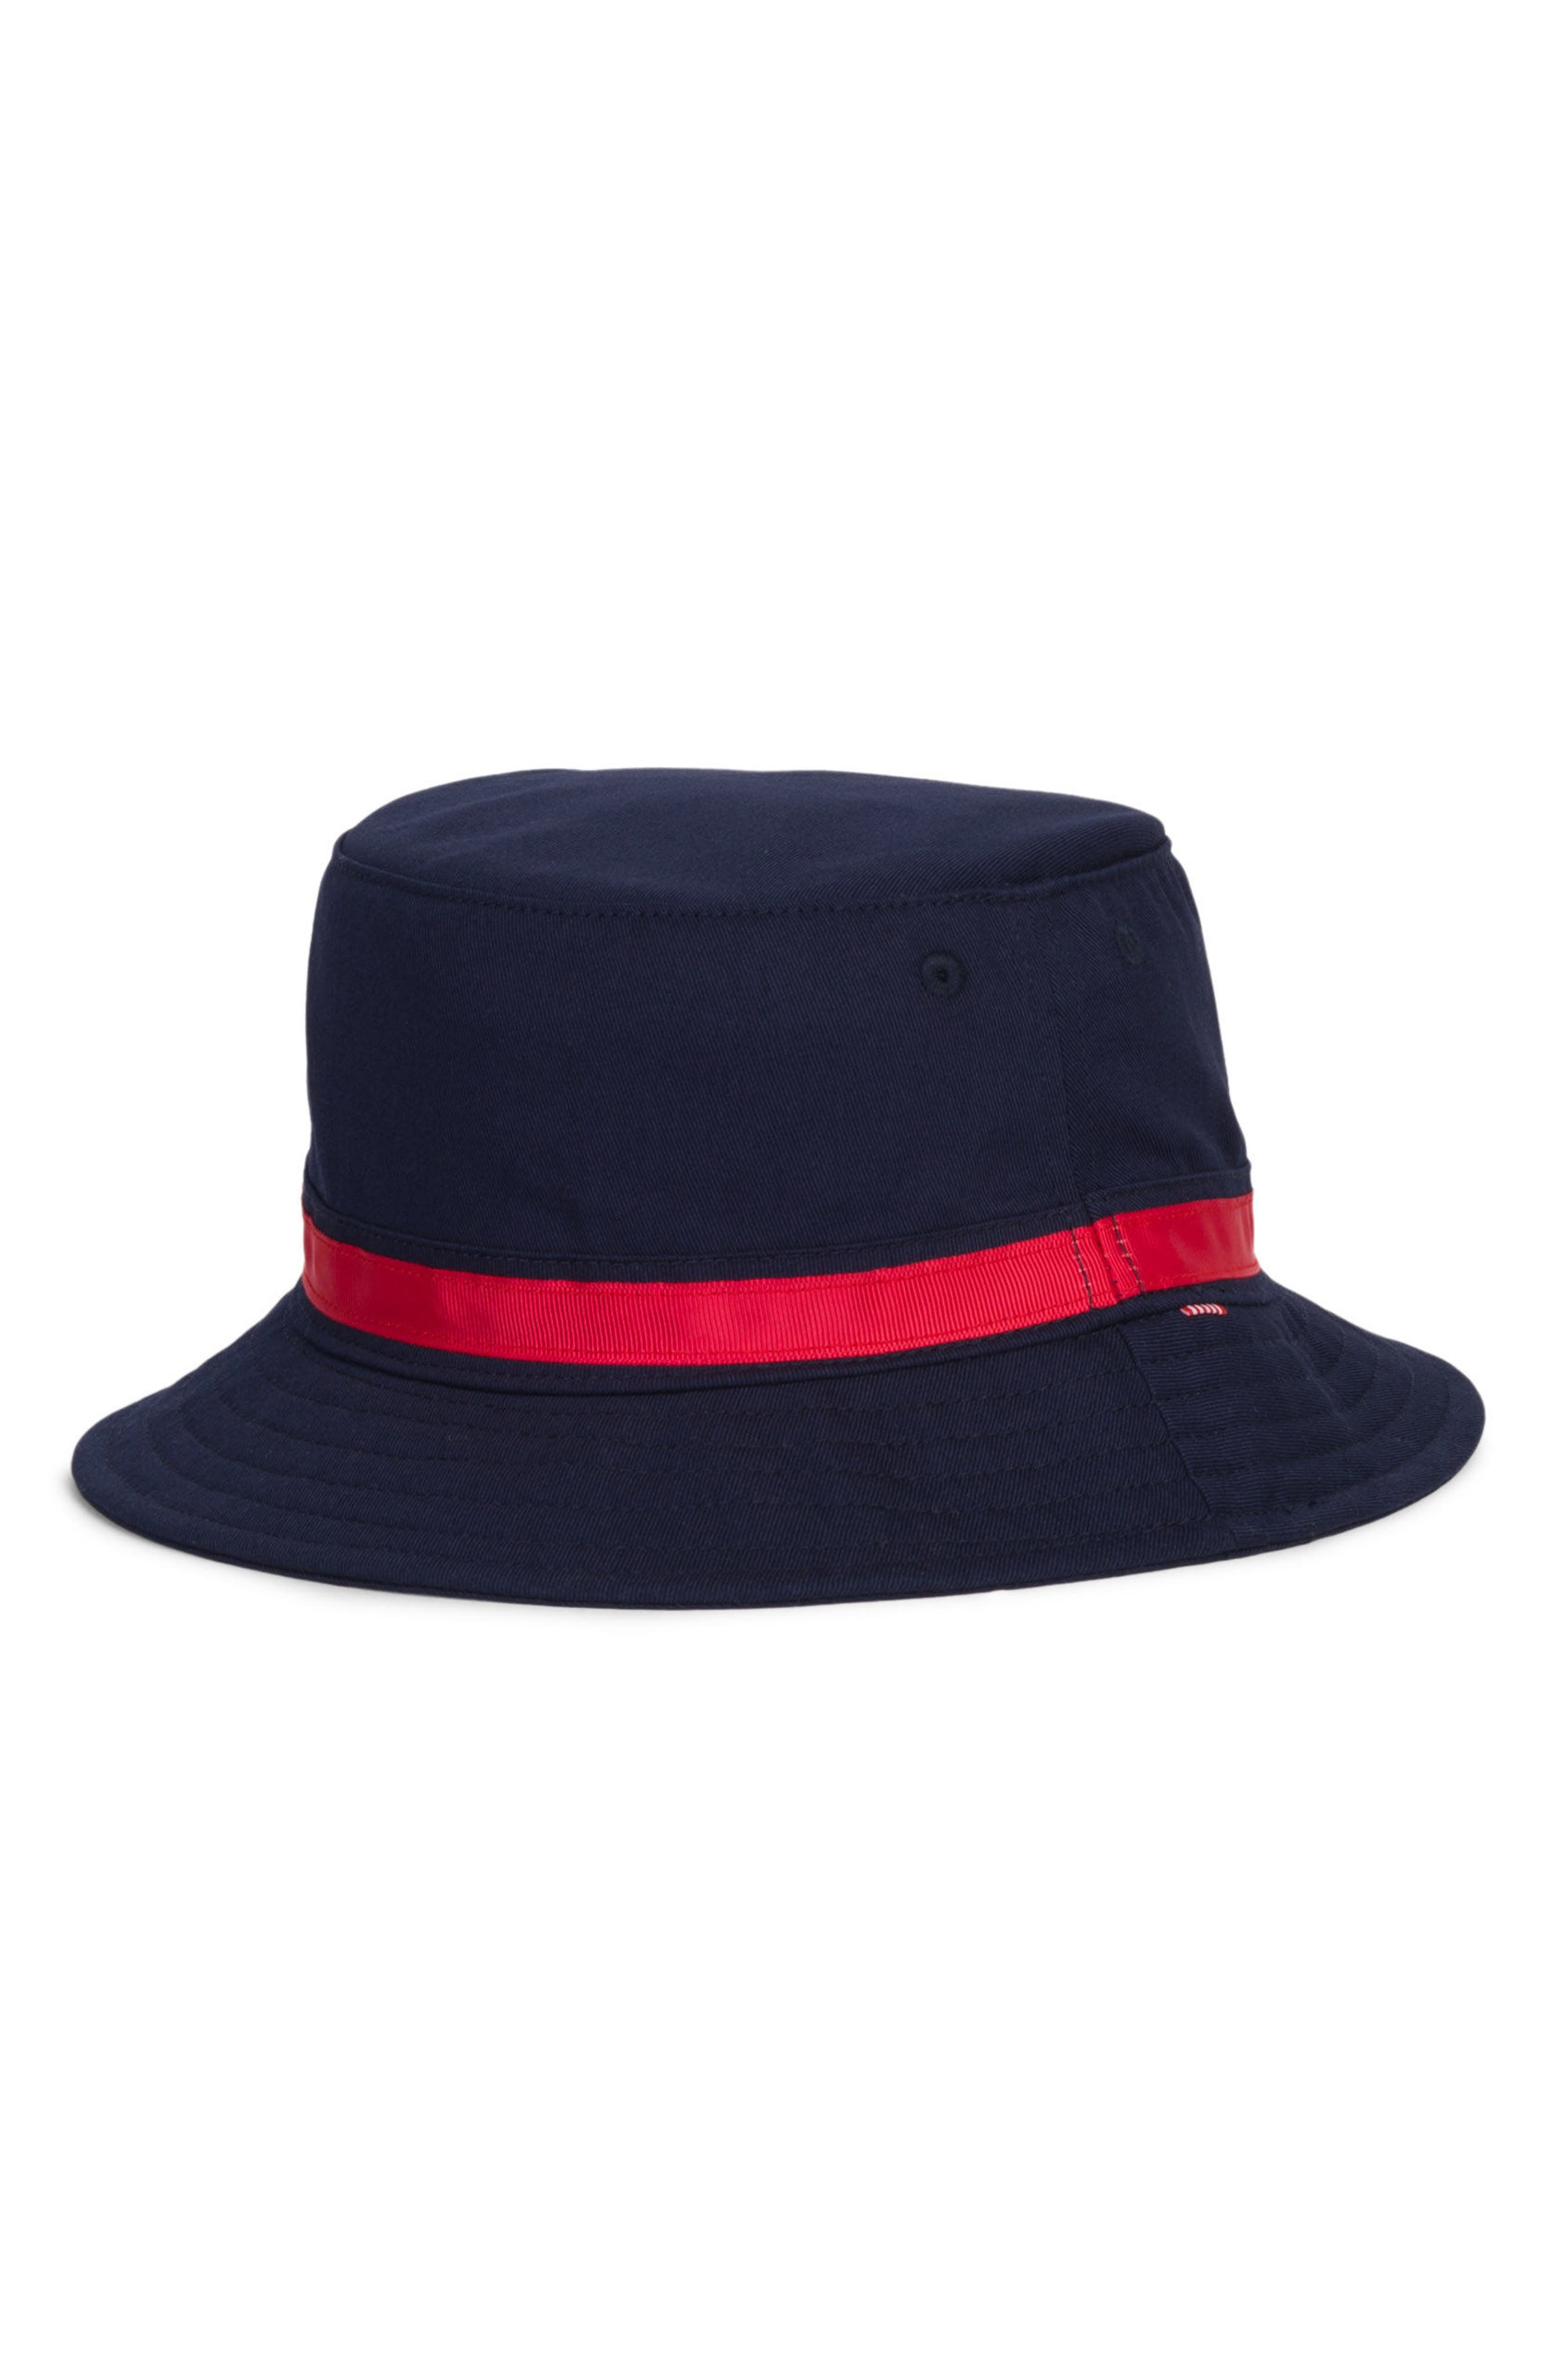 Two-Tone Lake Bucket Hat,                         Main,                         color, Navy/ Red